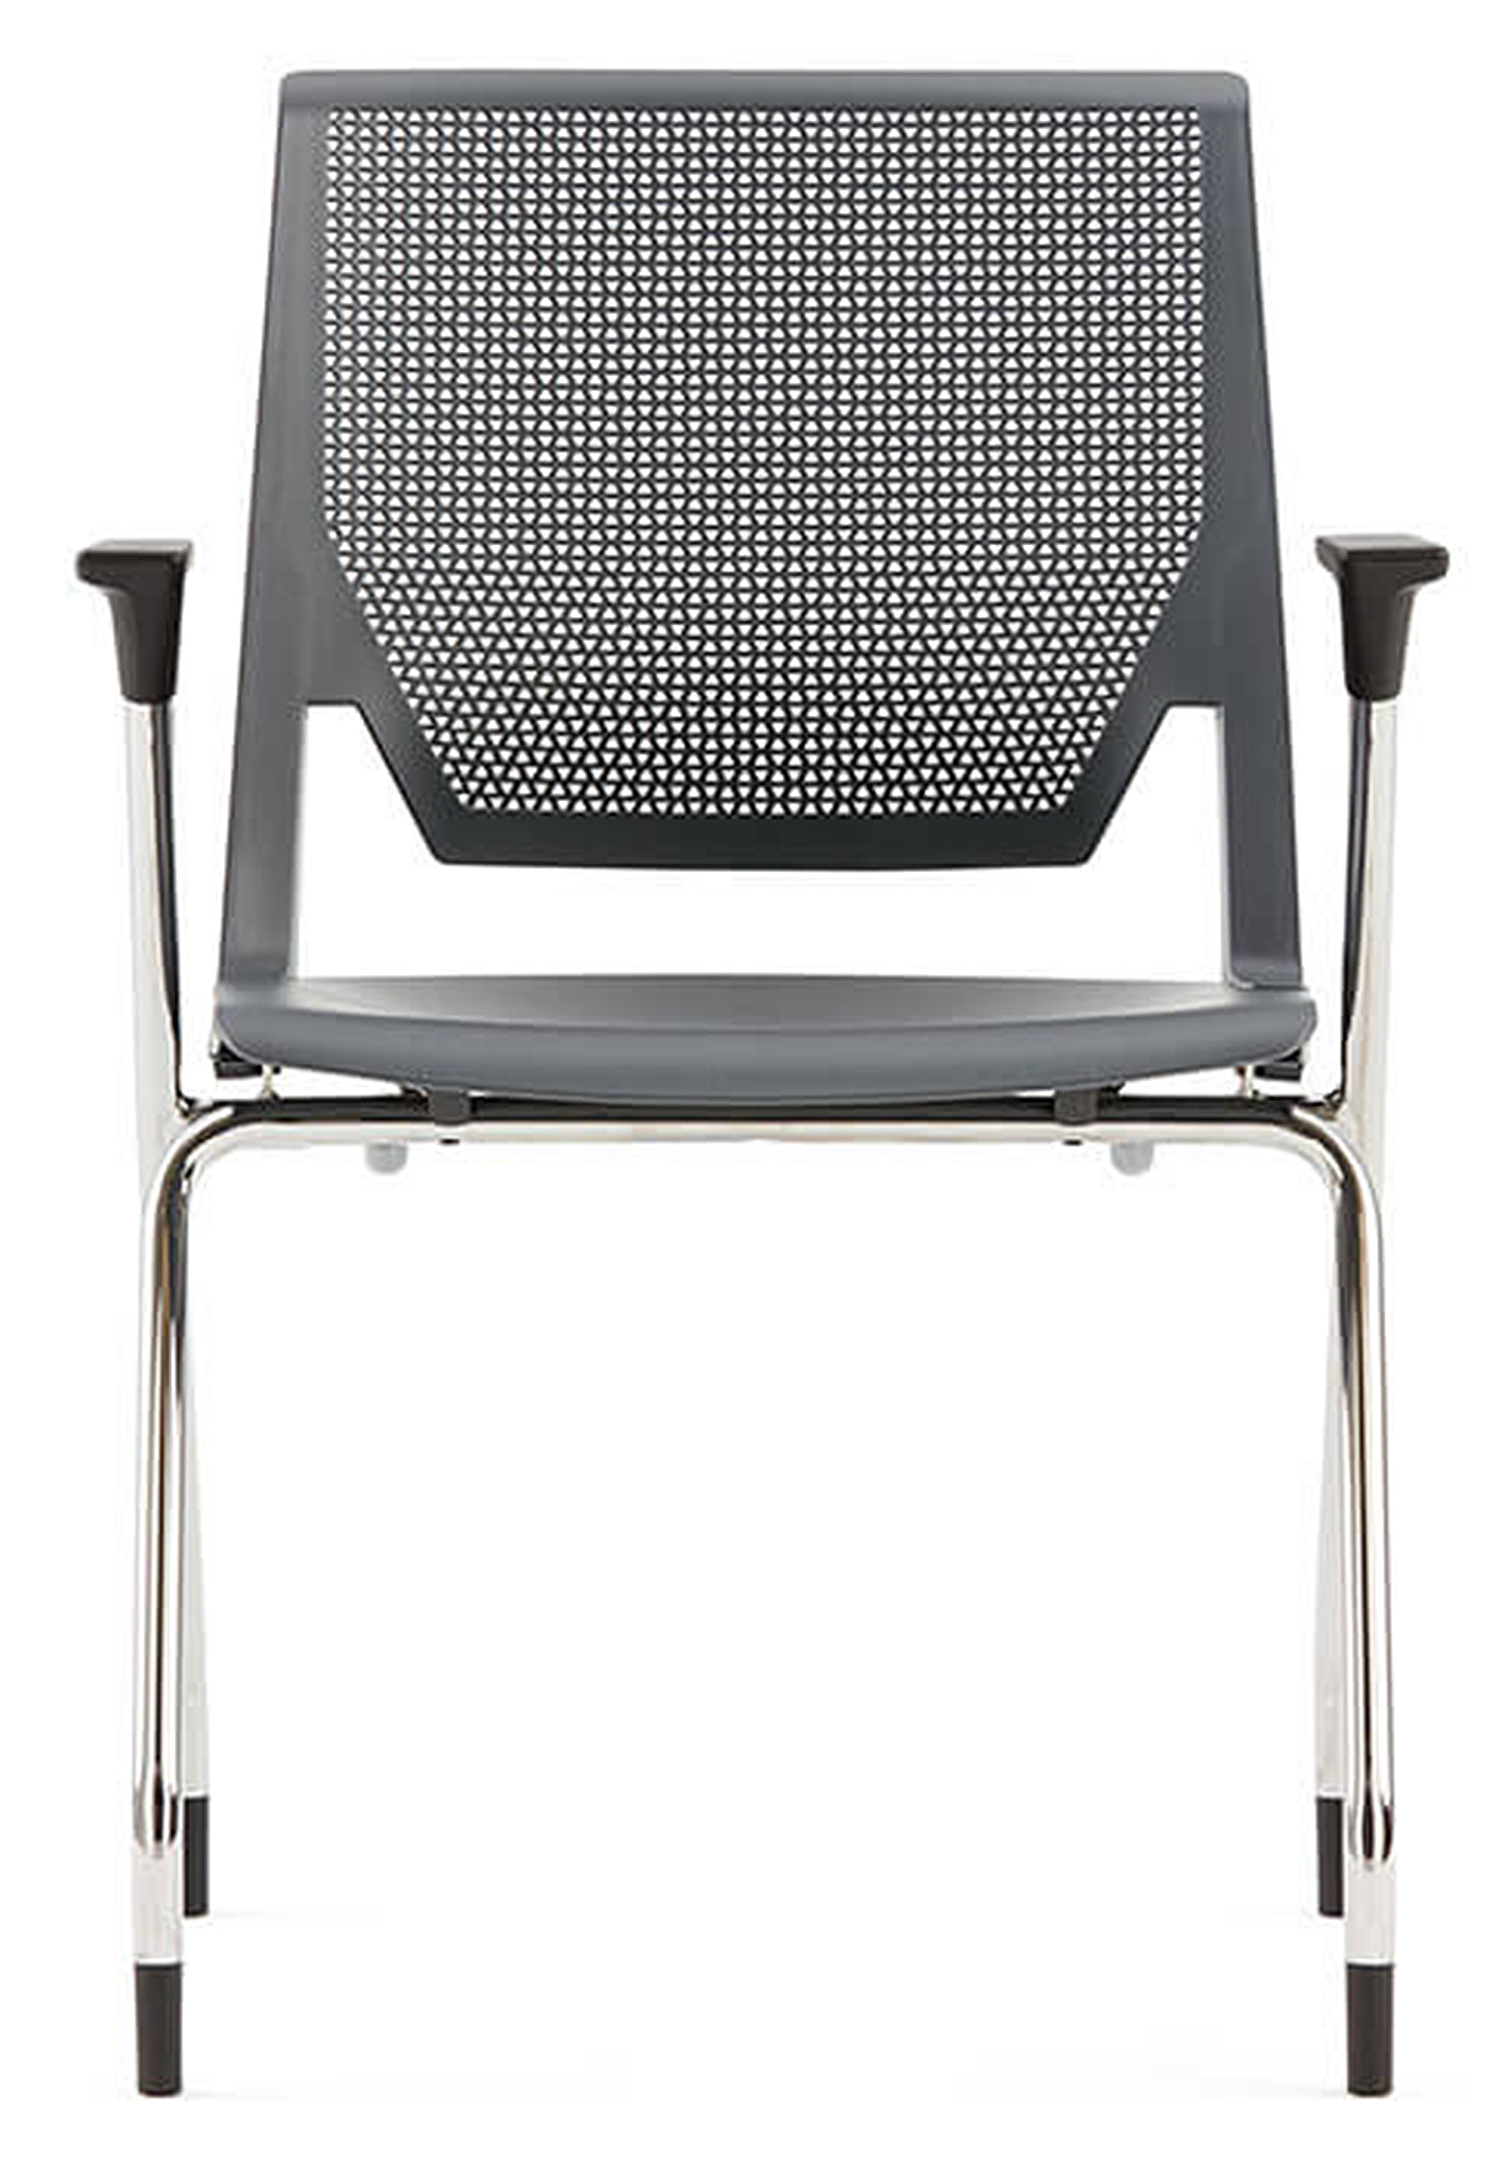 Introducing Very, a side and seminar chair designed by Michael Welsh for Haworth.